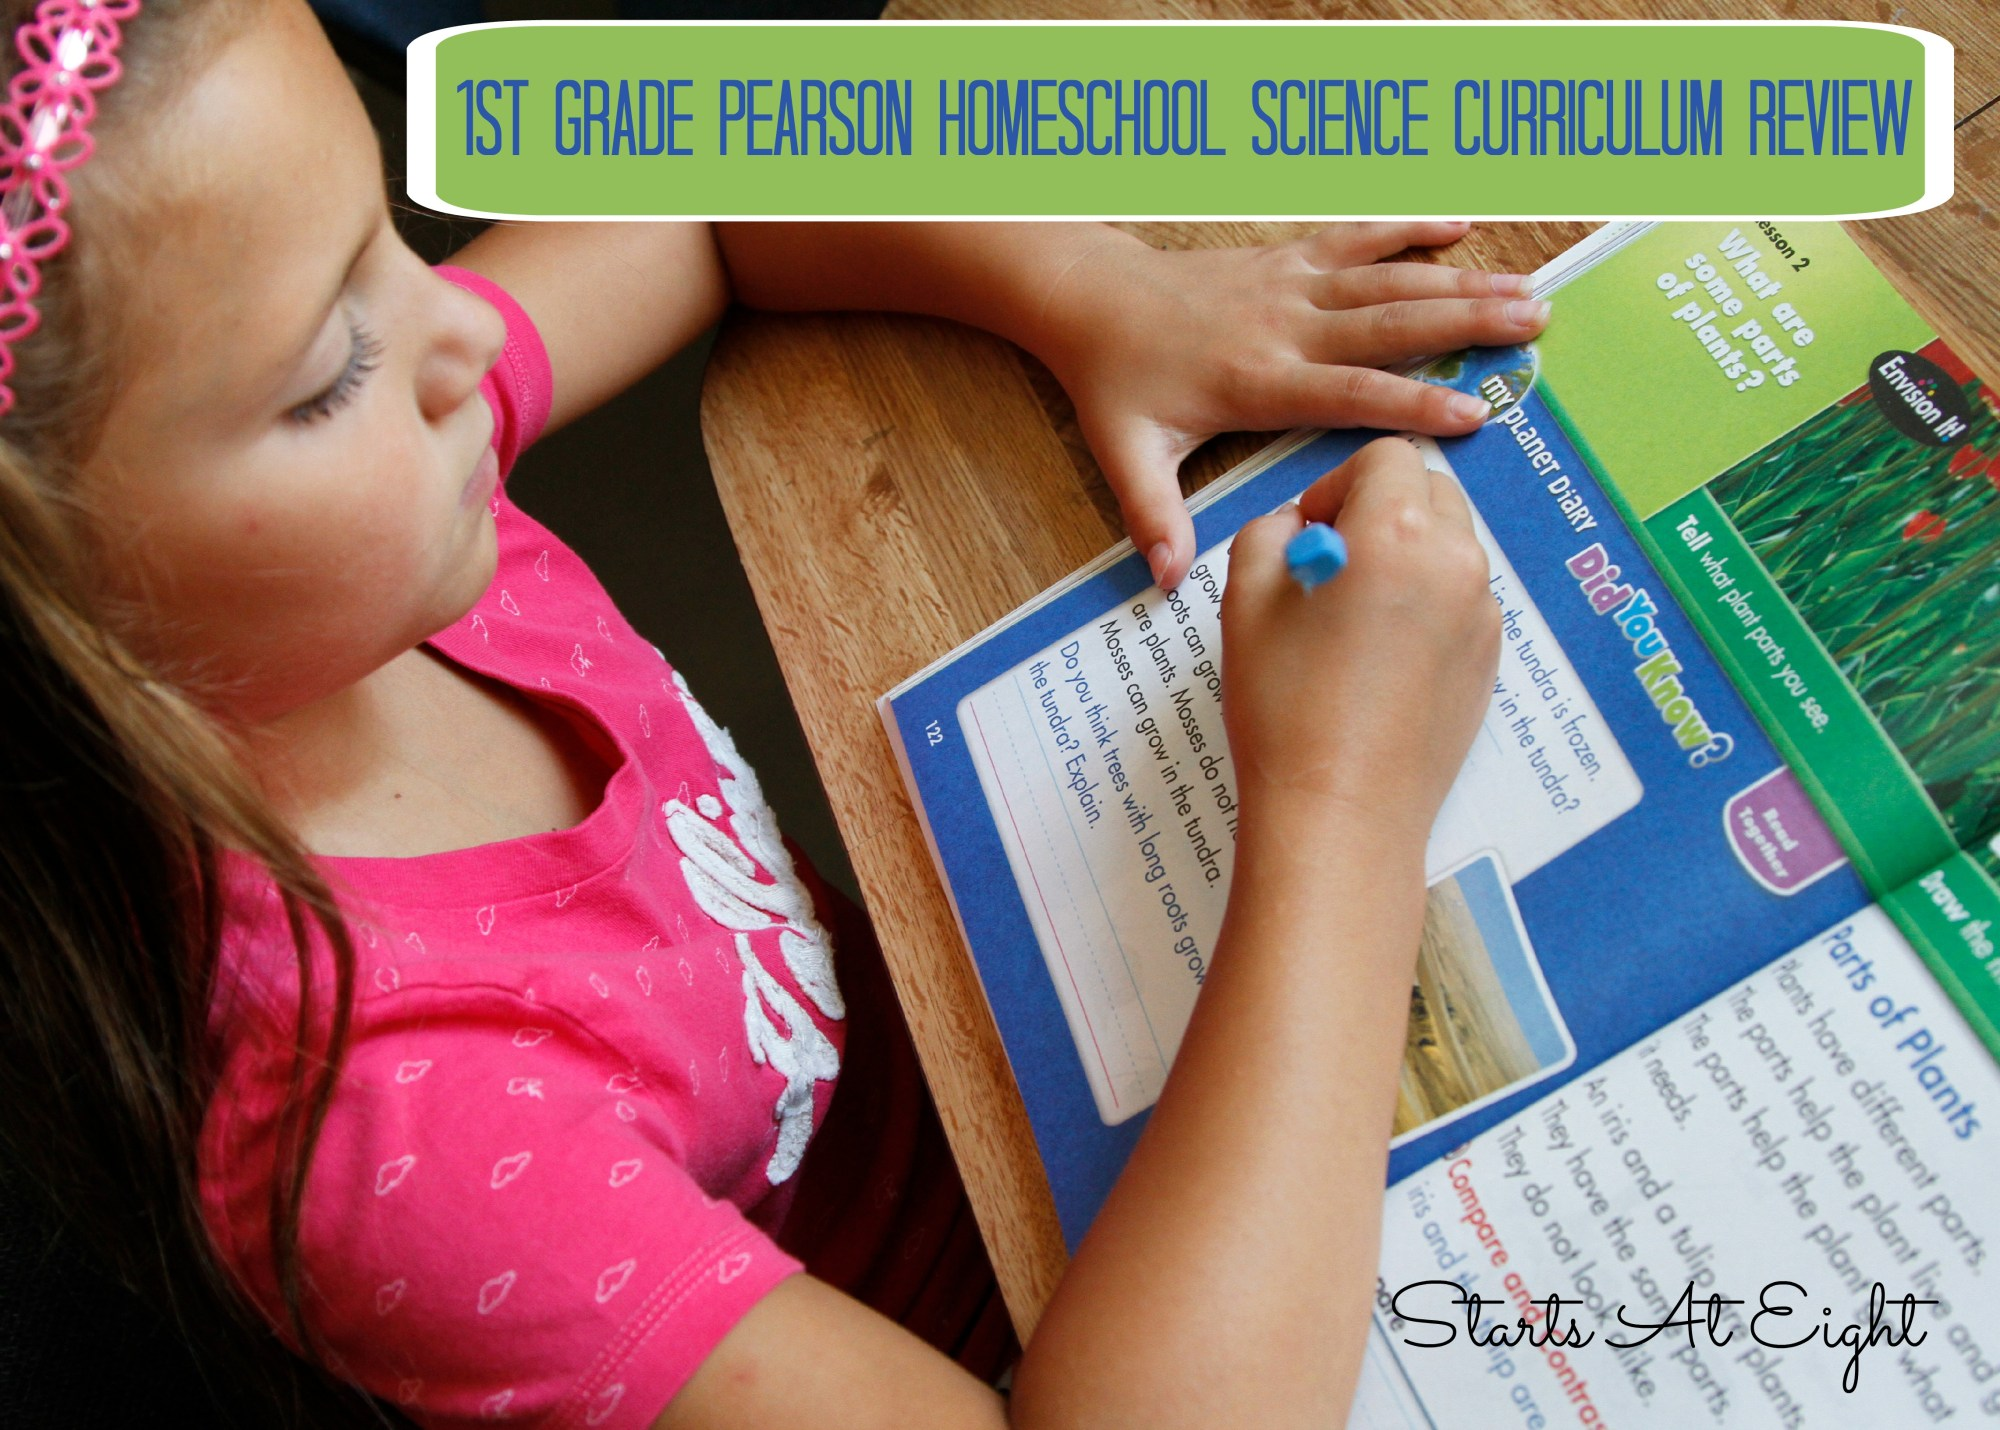 hight resolution of 1st Grade Pearson Homeschool Science Curriculum Review - StartsAtEight